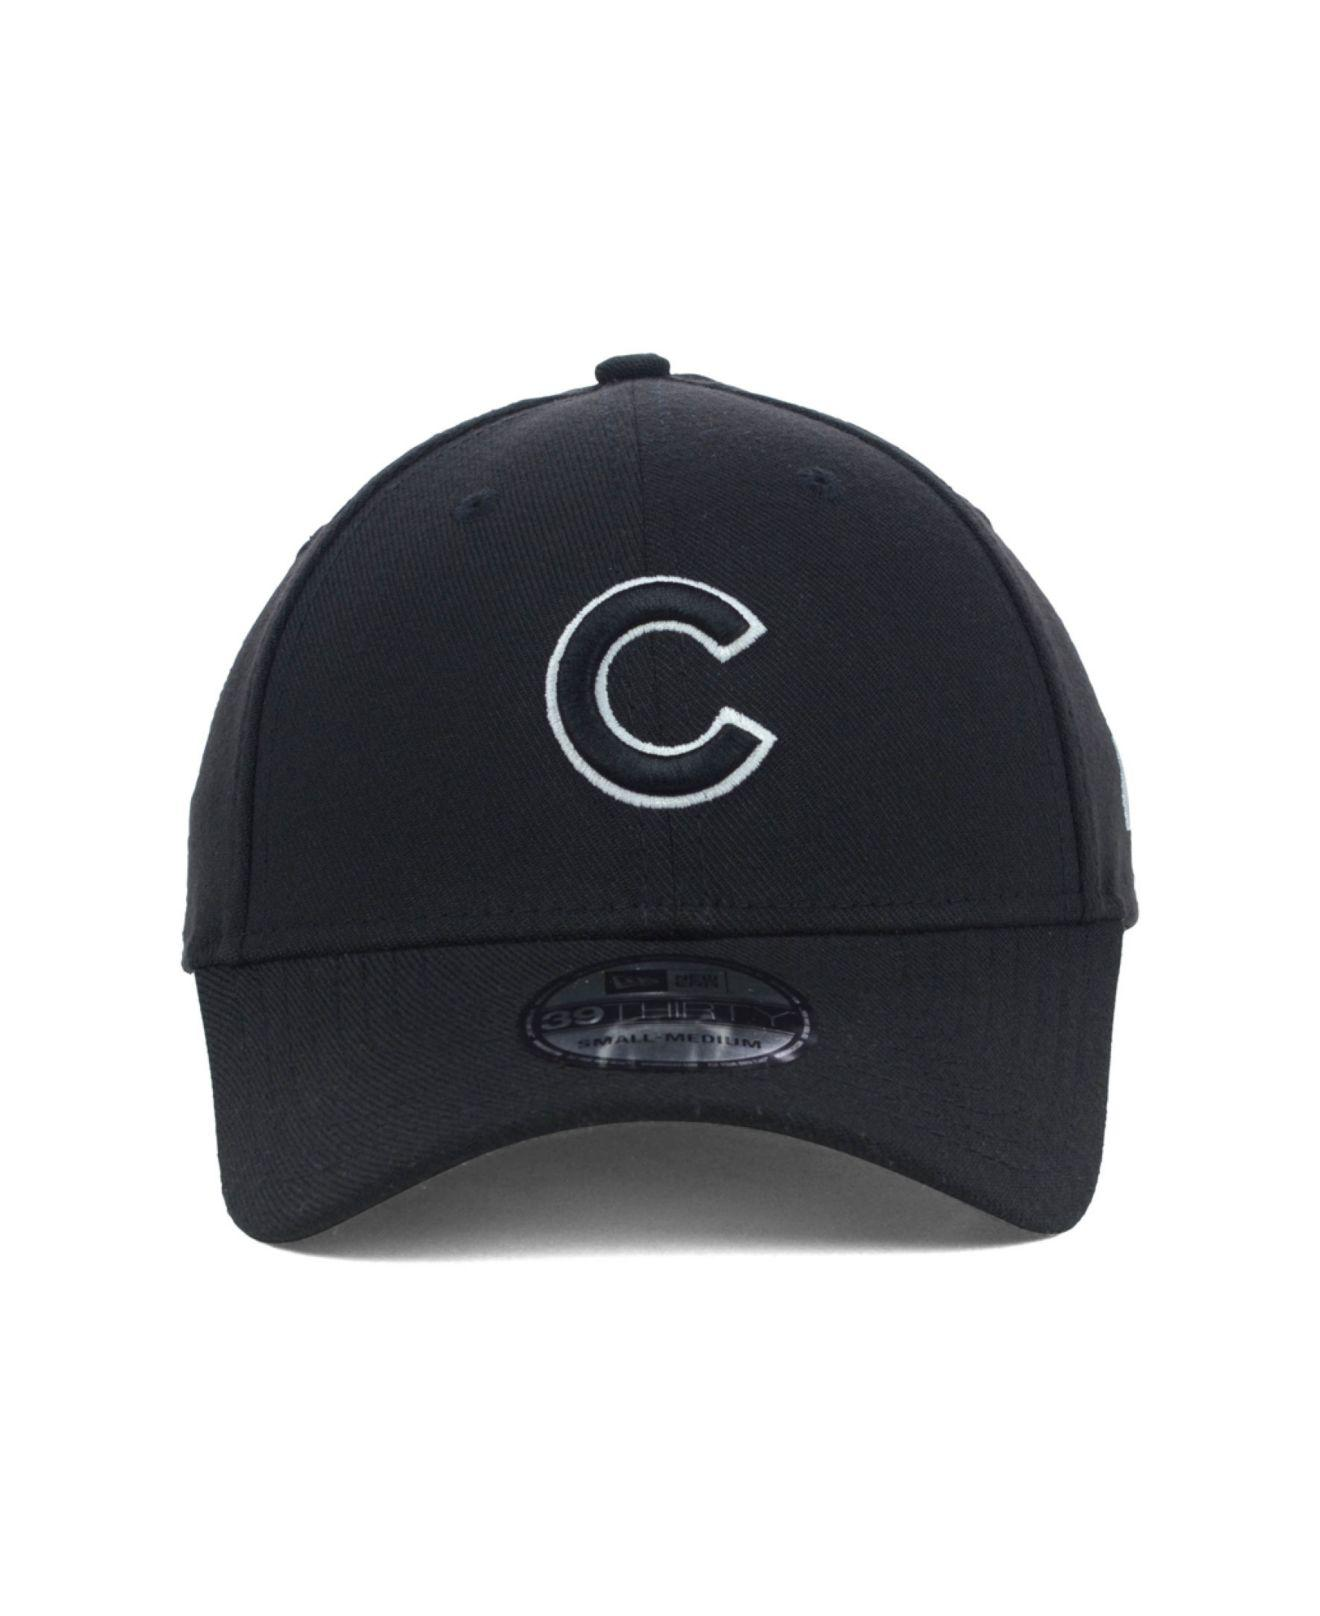 best service e4db5 5ba4f ... mlb batting practice prolight low profile 59fifty cap qneyv185169 9115d  19000  get coupon code lyst ktz chicago cubs black and white classic  39thirty ...